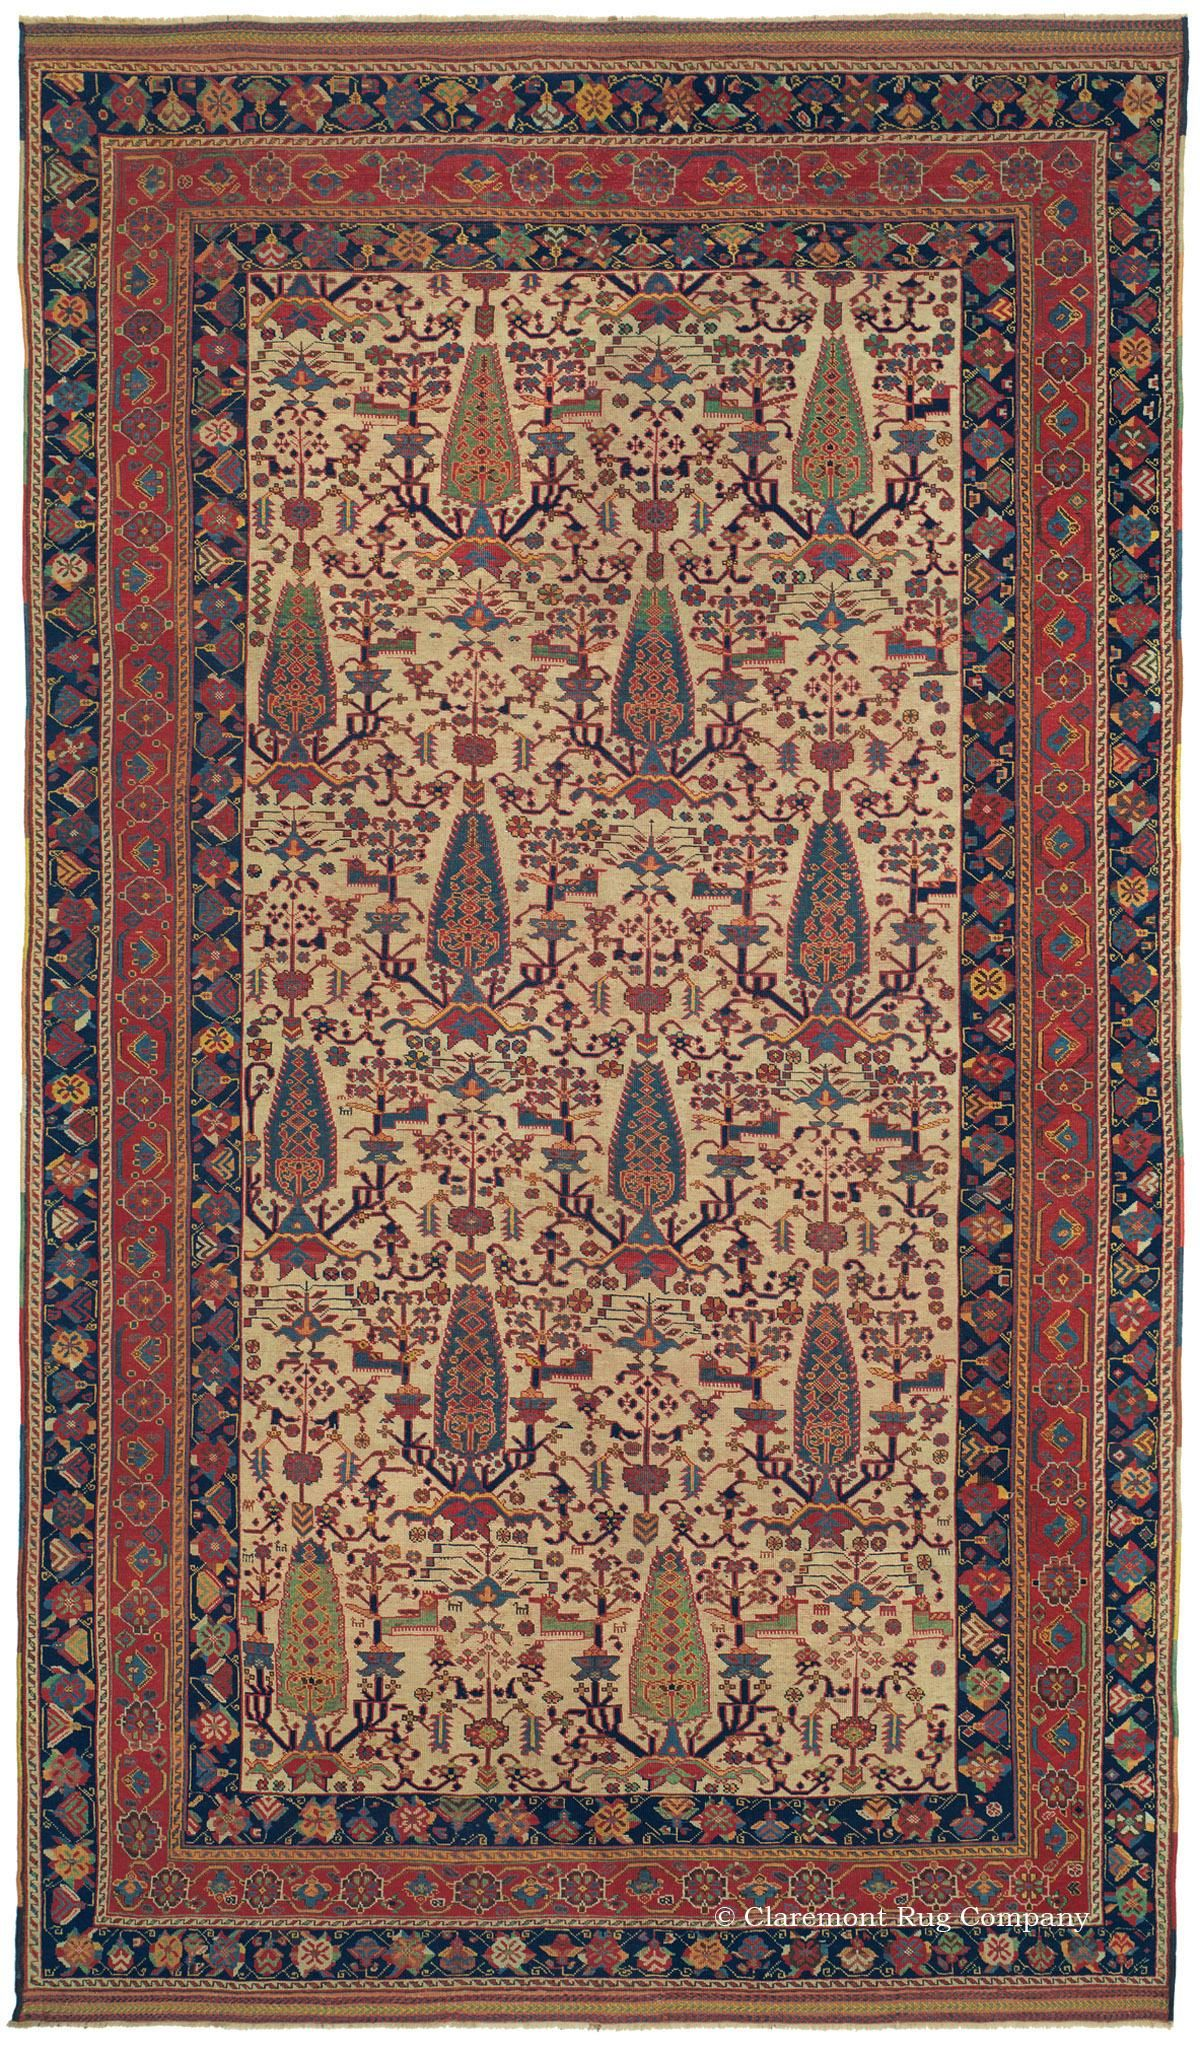 persian rug dating Of all persian rugs and carpets perhaps the most beloved in the united states are the sarouk carpets between the world wars this was the quintessential persian rug for the american market.